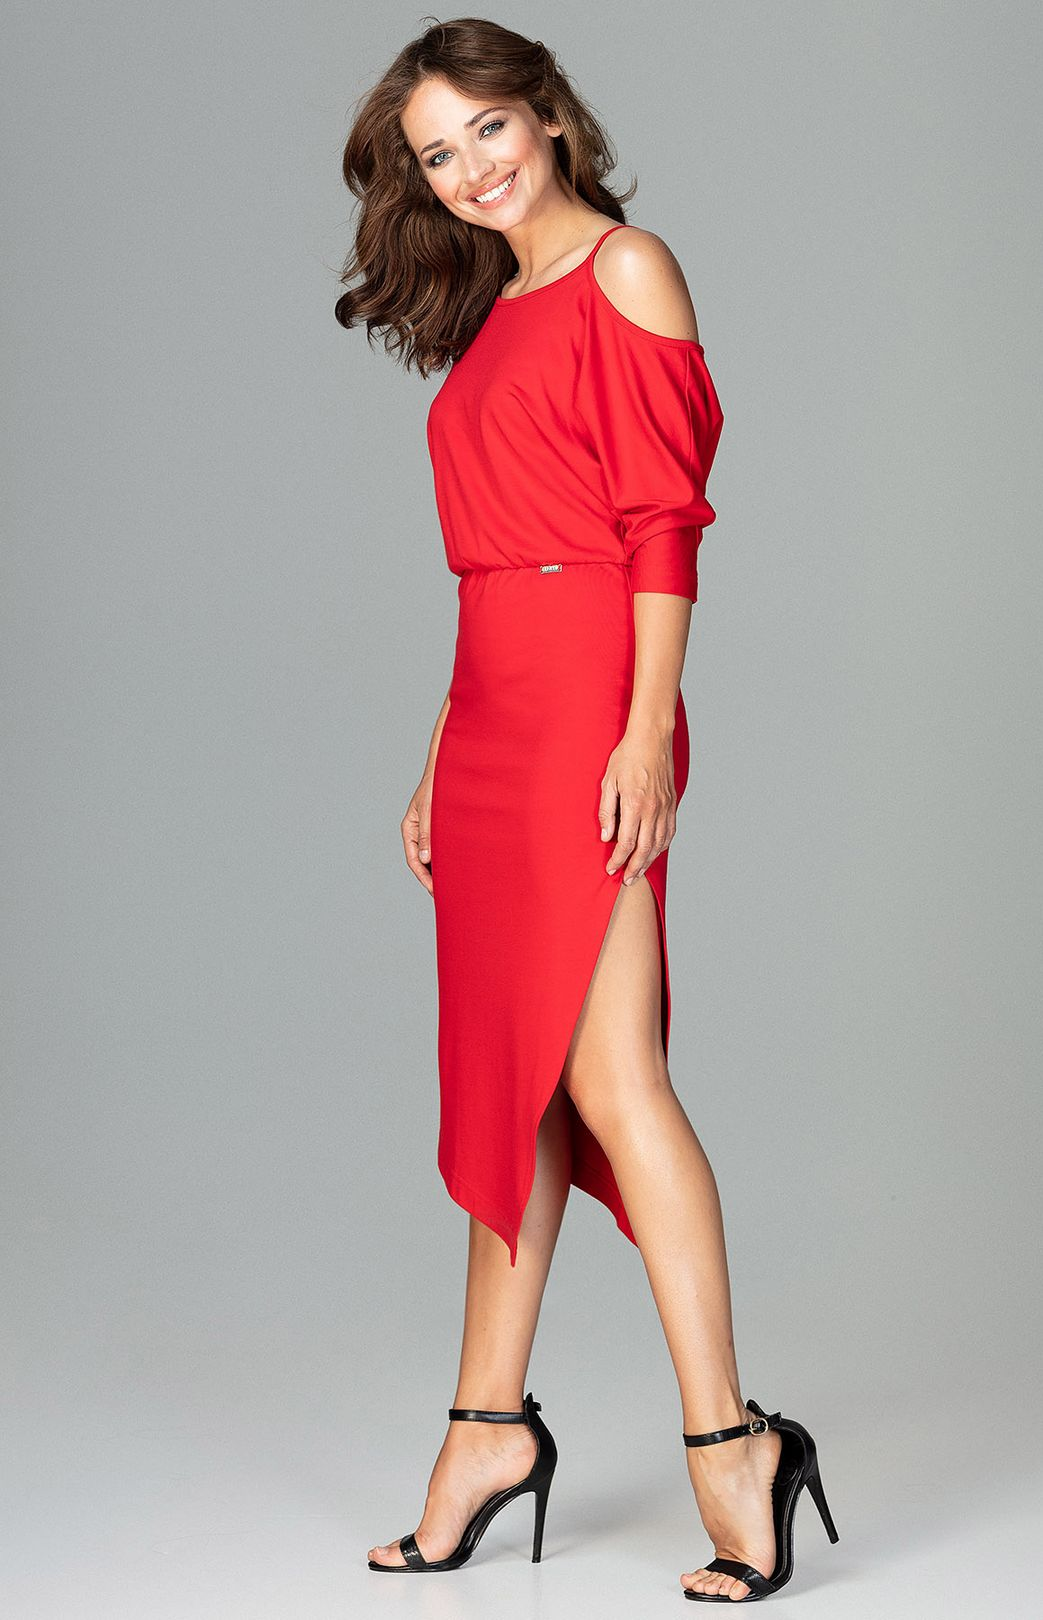 Red Asymmetrical Tango Dress Flk479r Idresstocode Online Boutique Of Negligee And Nightgowns Elegant Dresses Pencil Skirts And Blouses Leather Skirts High Heel S